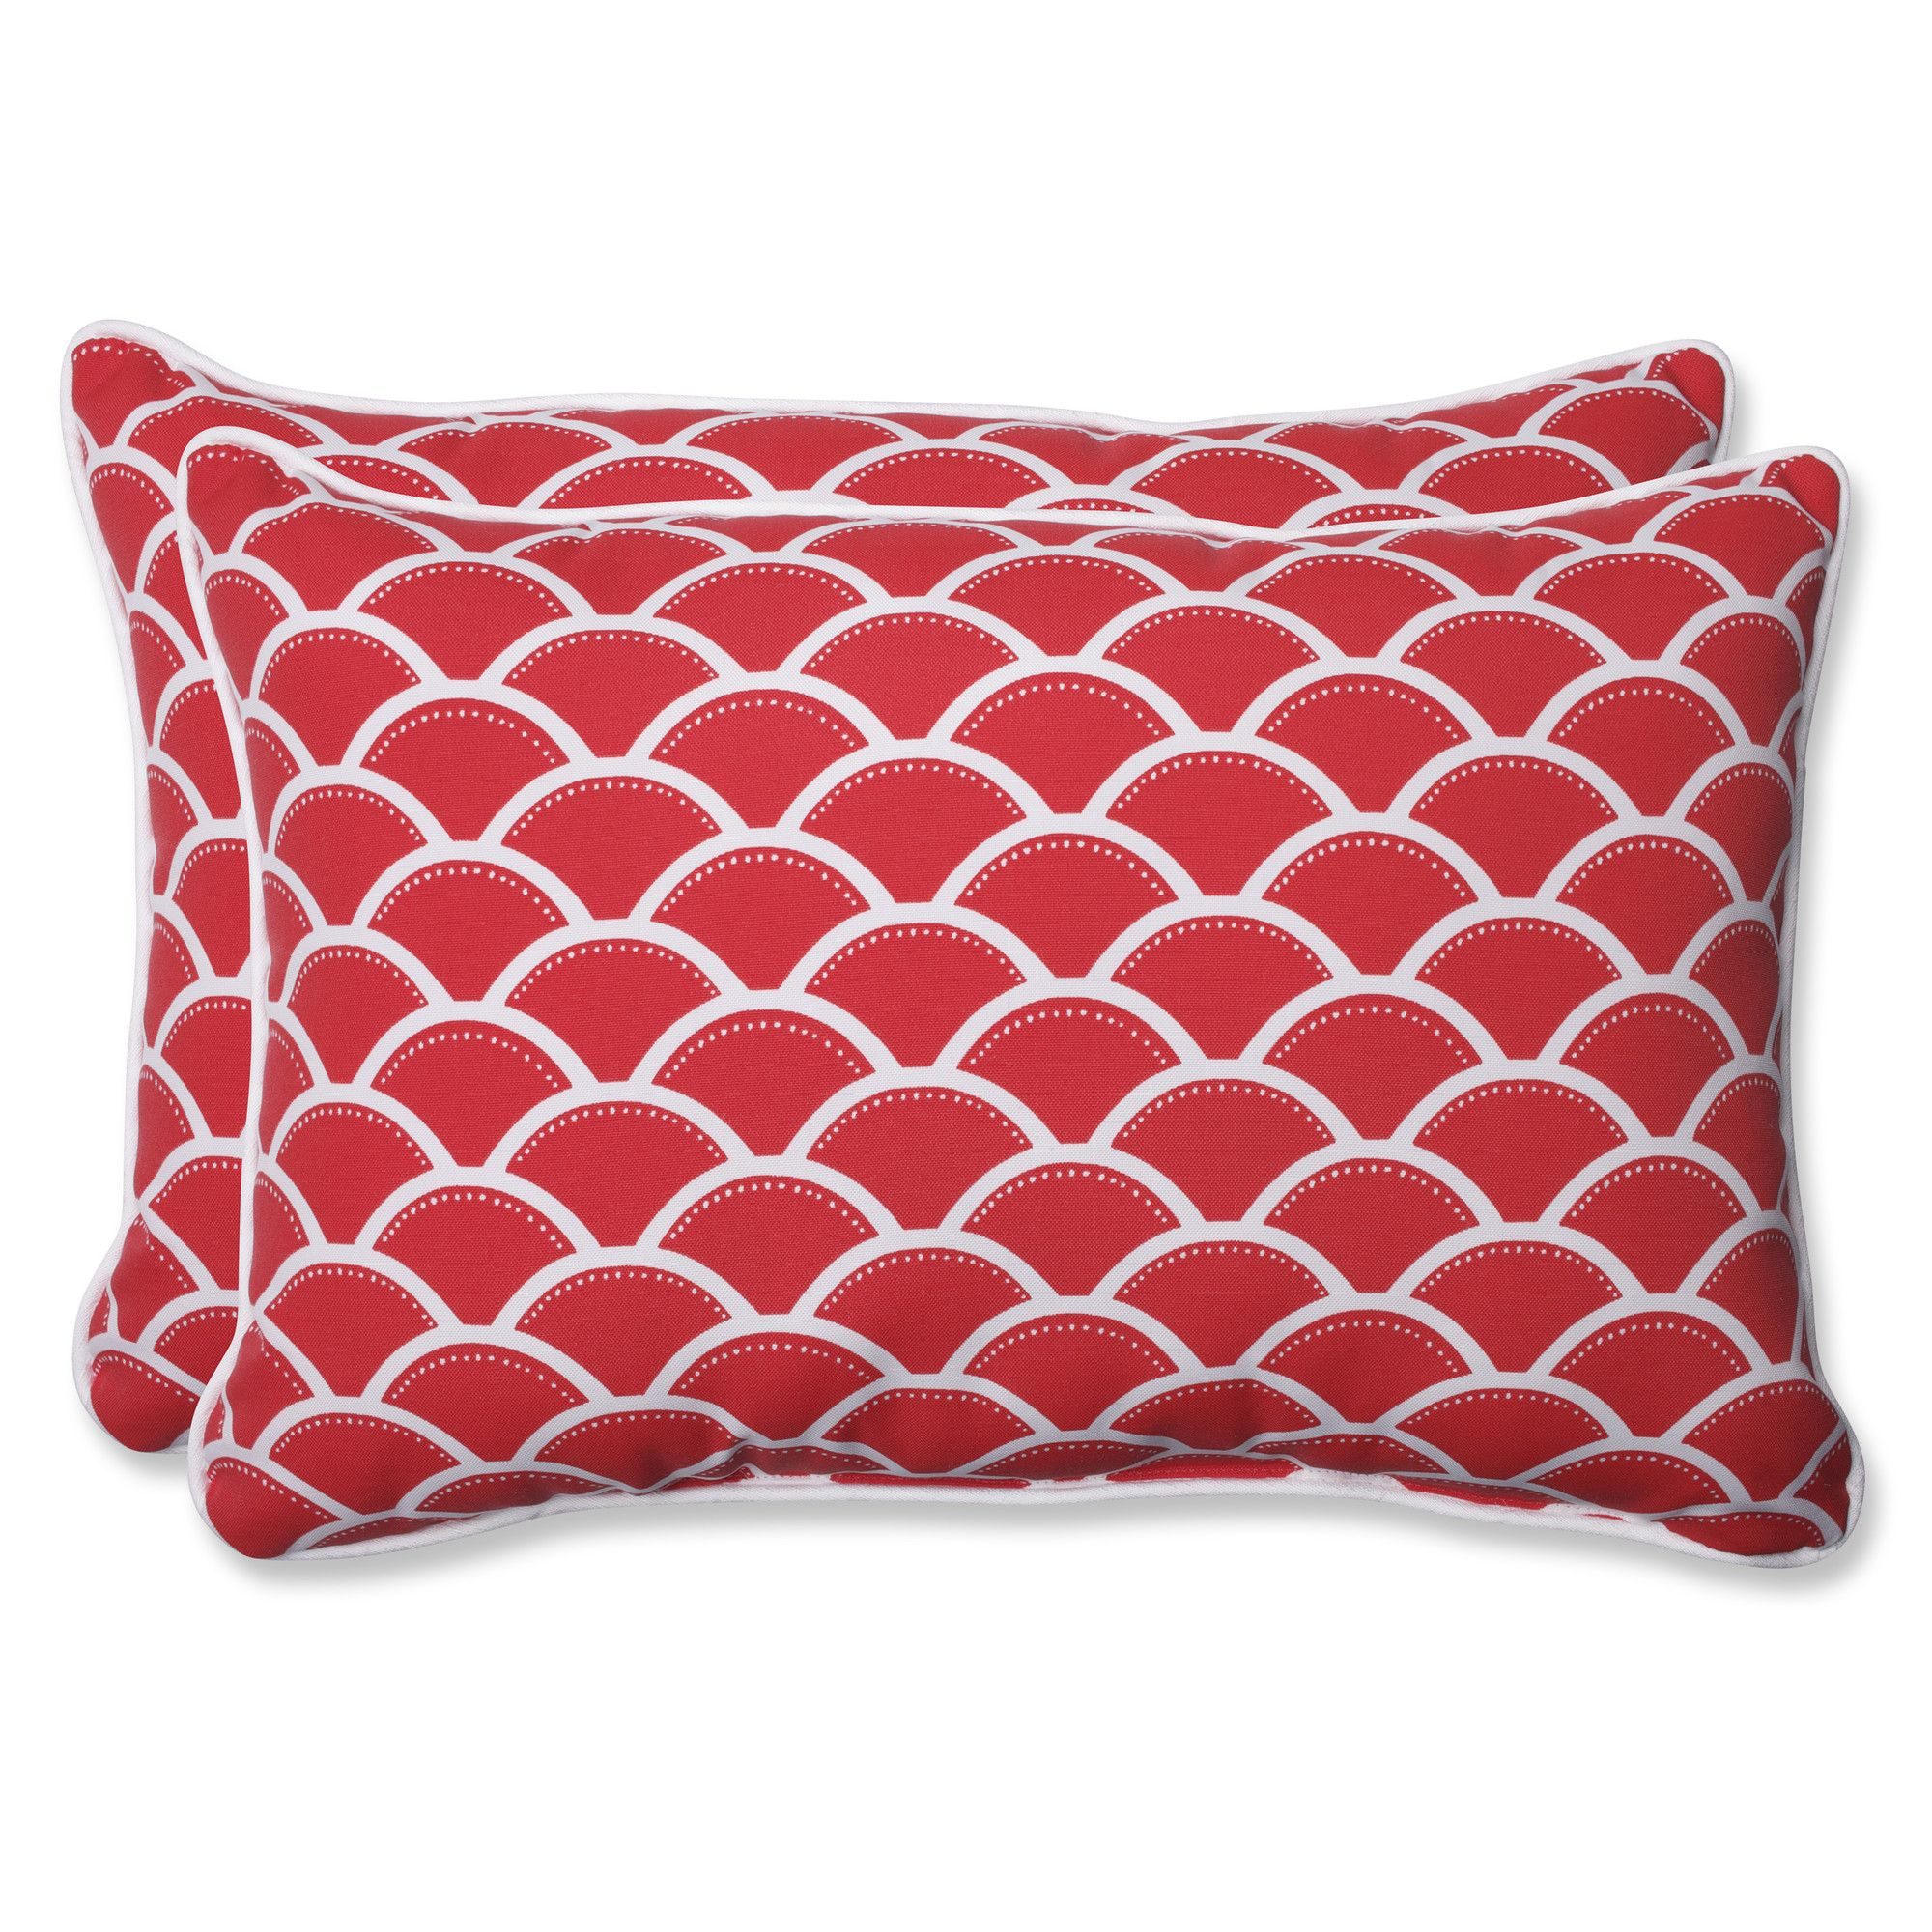 great with uamp cheap pillows decorative for sources lr top my throw decor